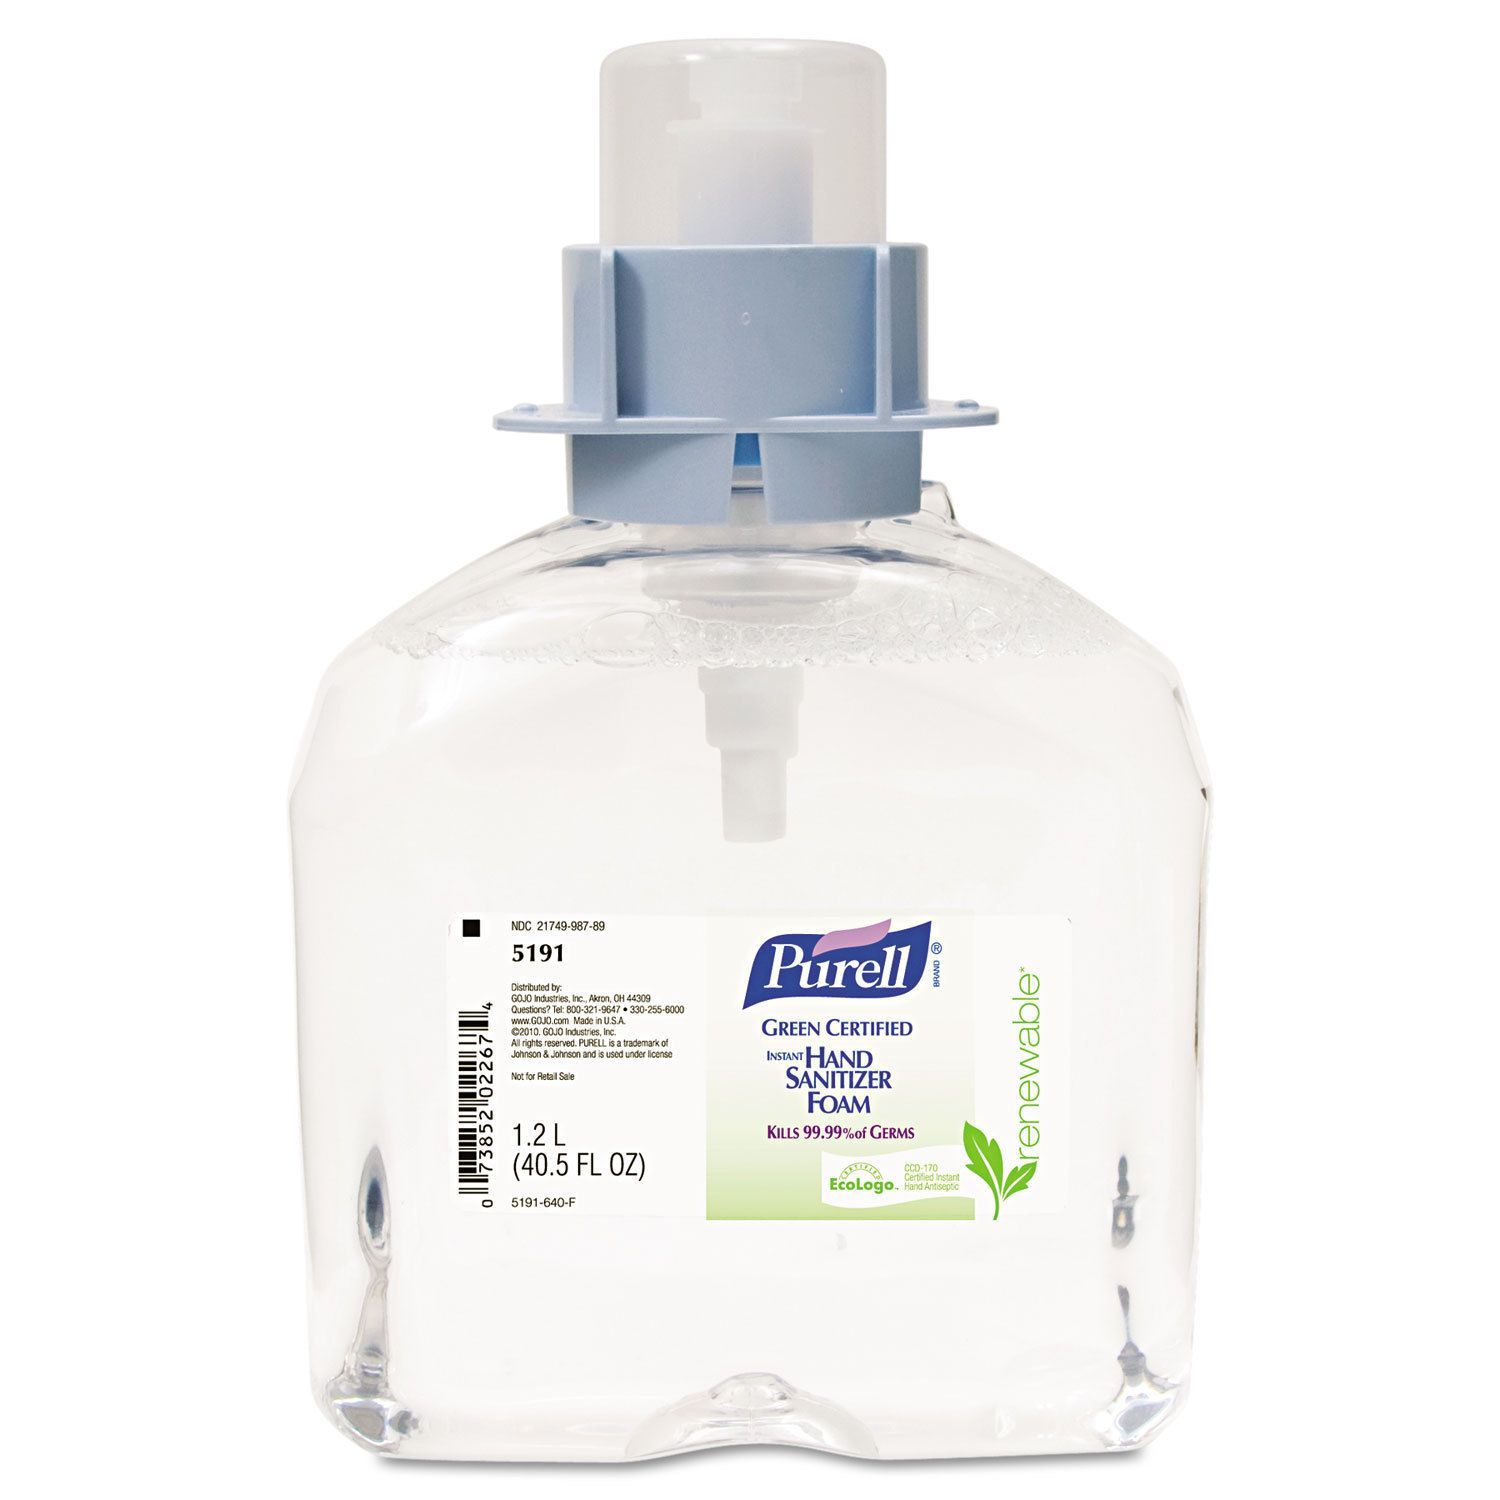 Purell Advanced Green Certified Instant Hand Sanitizer Foam 1200ml